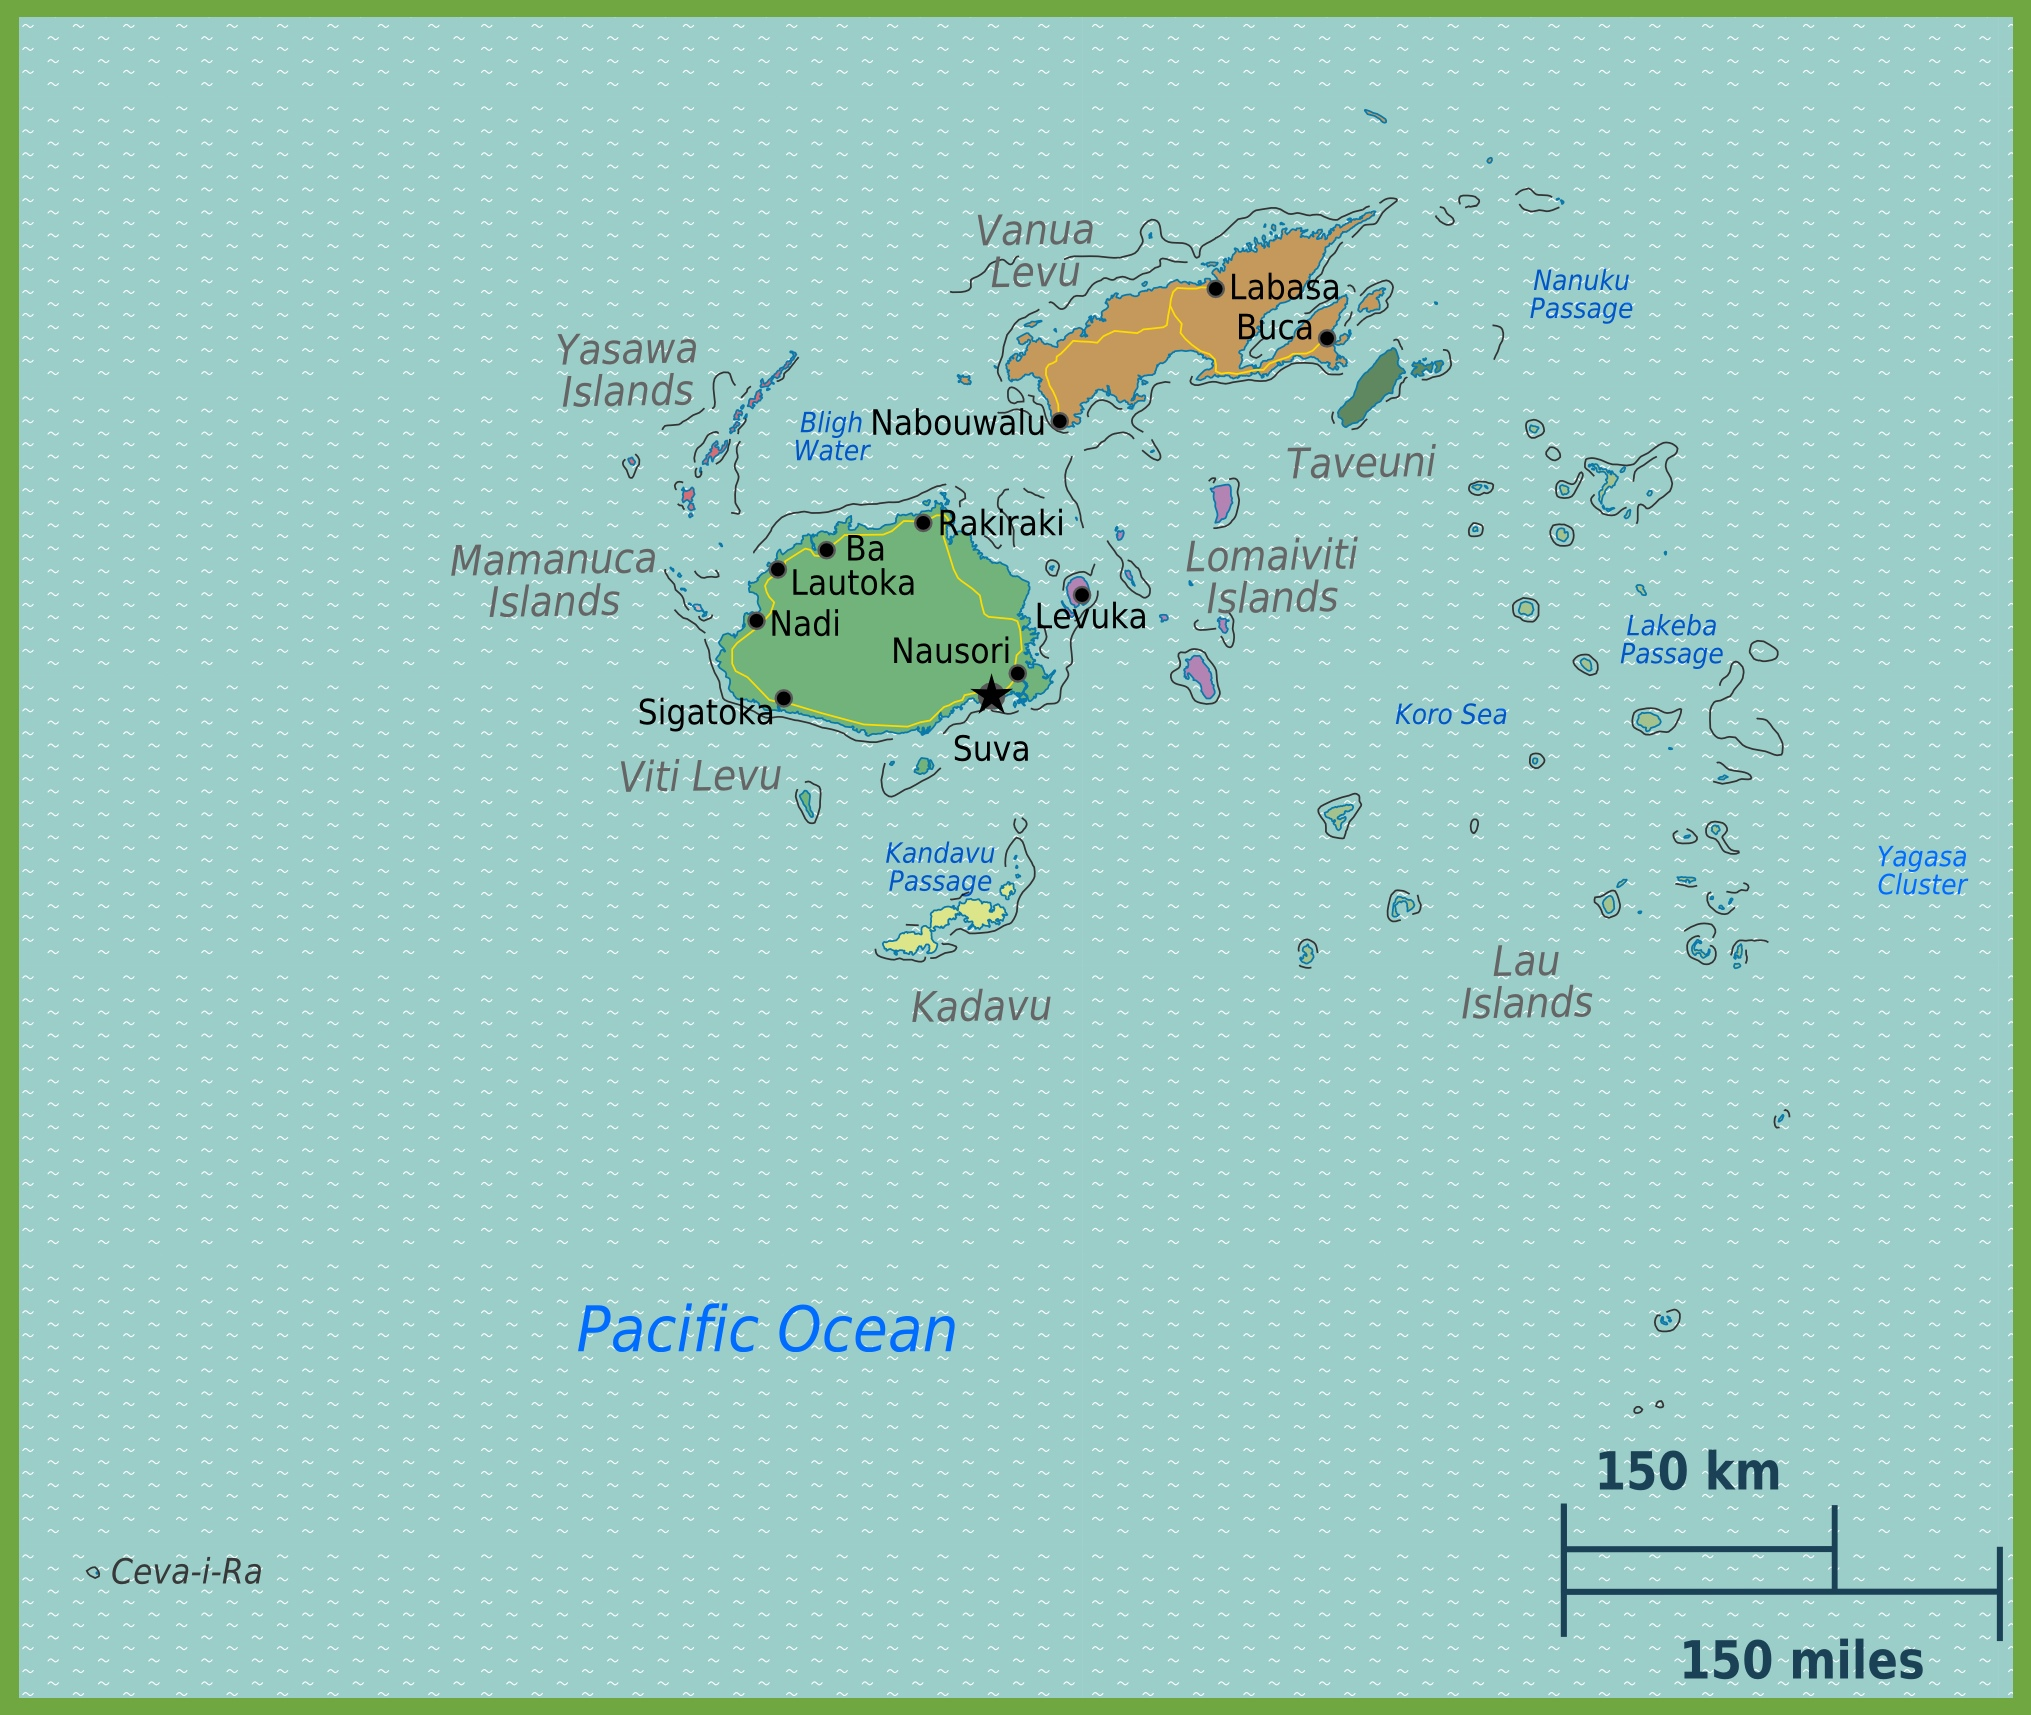 Road map fiji political map with capital suva islands important political map of fiji fiji political map gumiabroncs Gallery